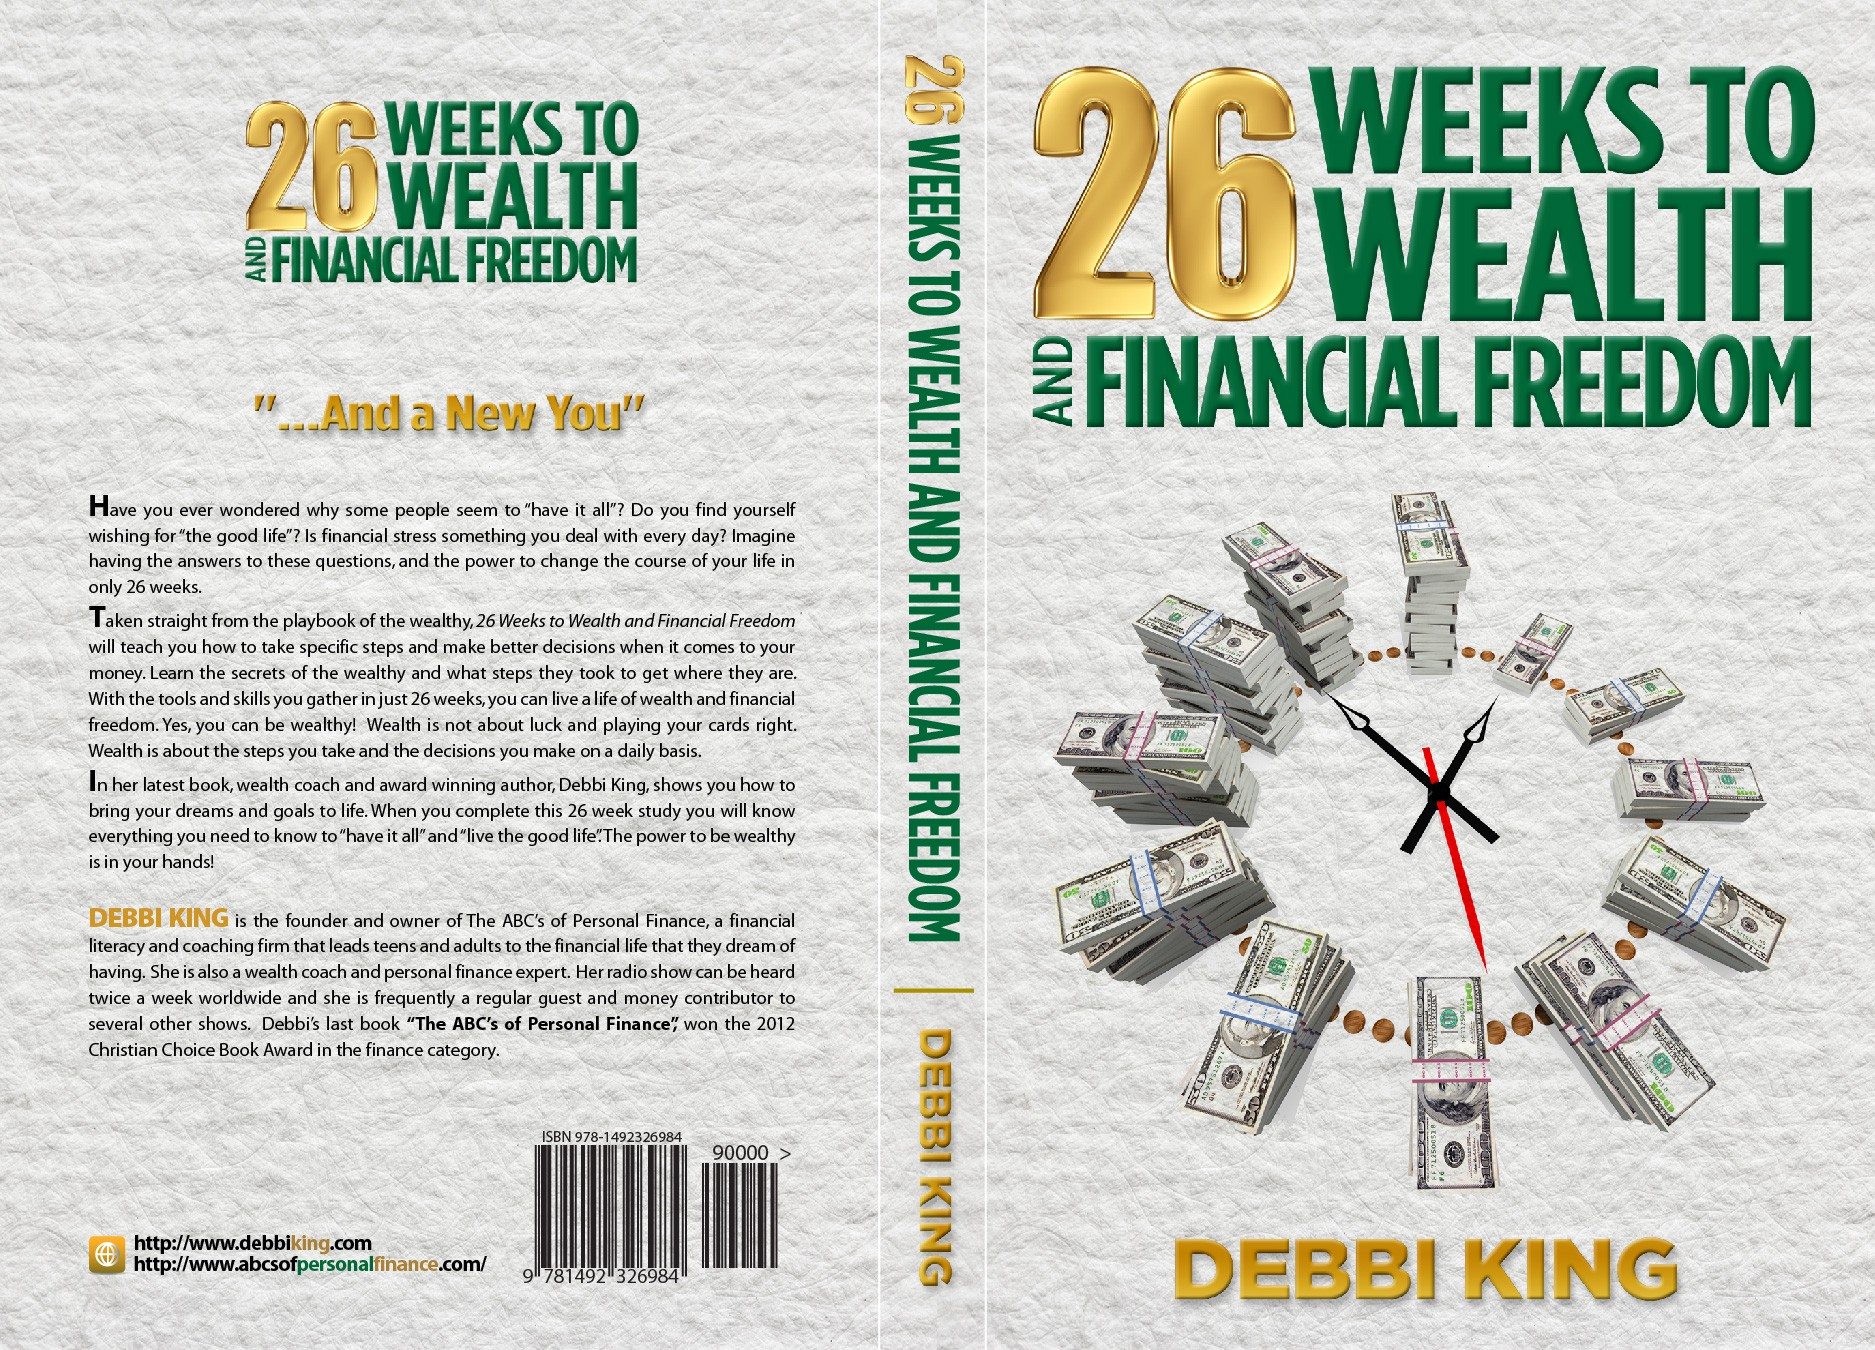 Help The ABC's of Personal Finance with a new book or magazine cover